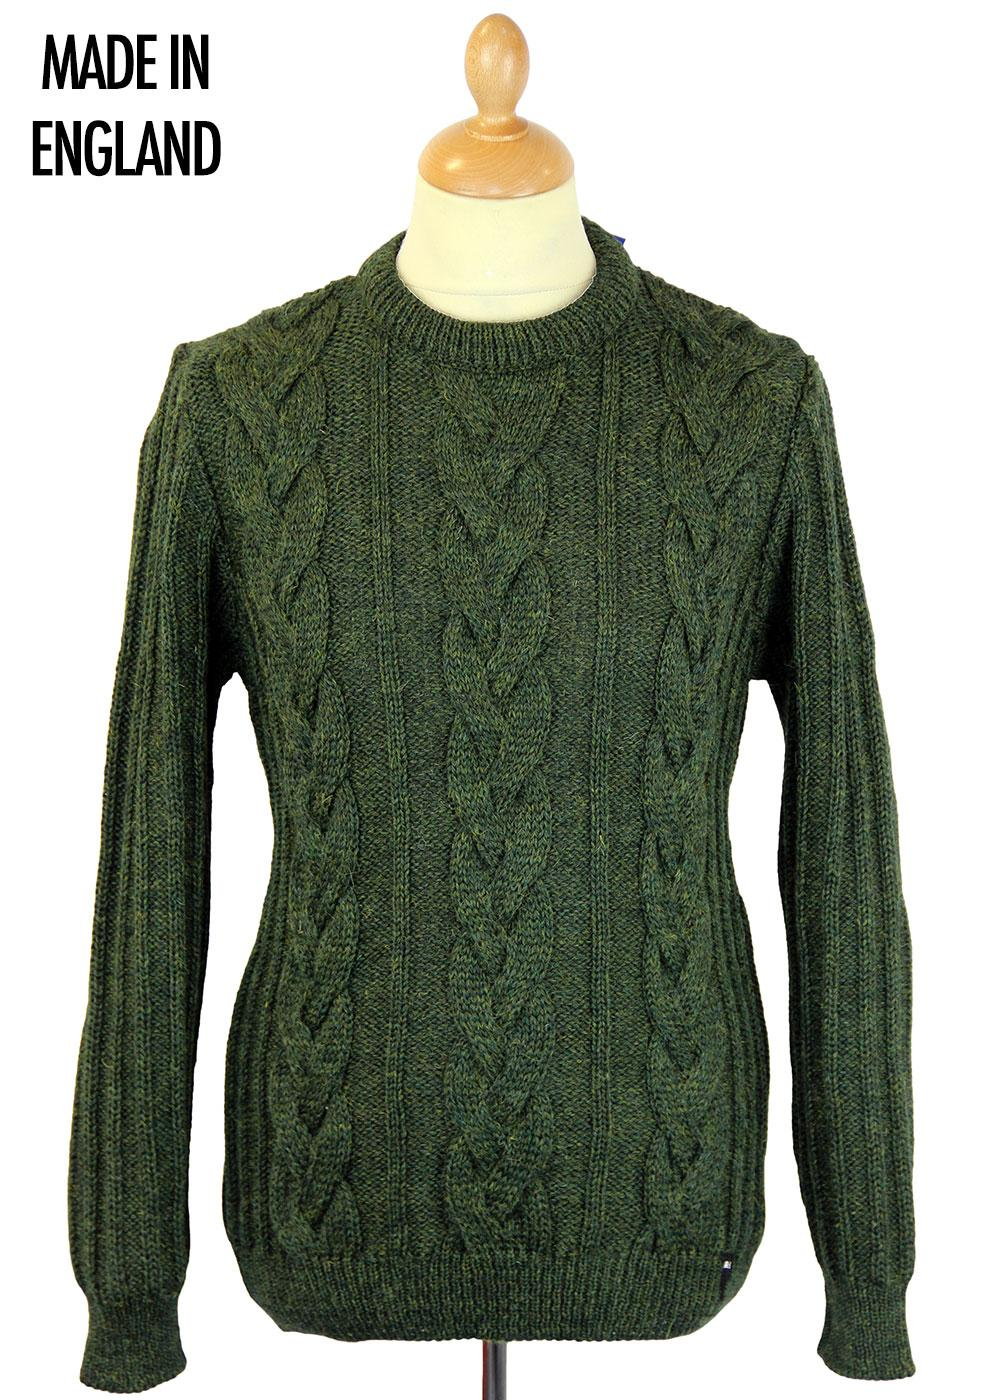 REALM & EMPIRE Made in England Cable Knit Jumper L